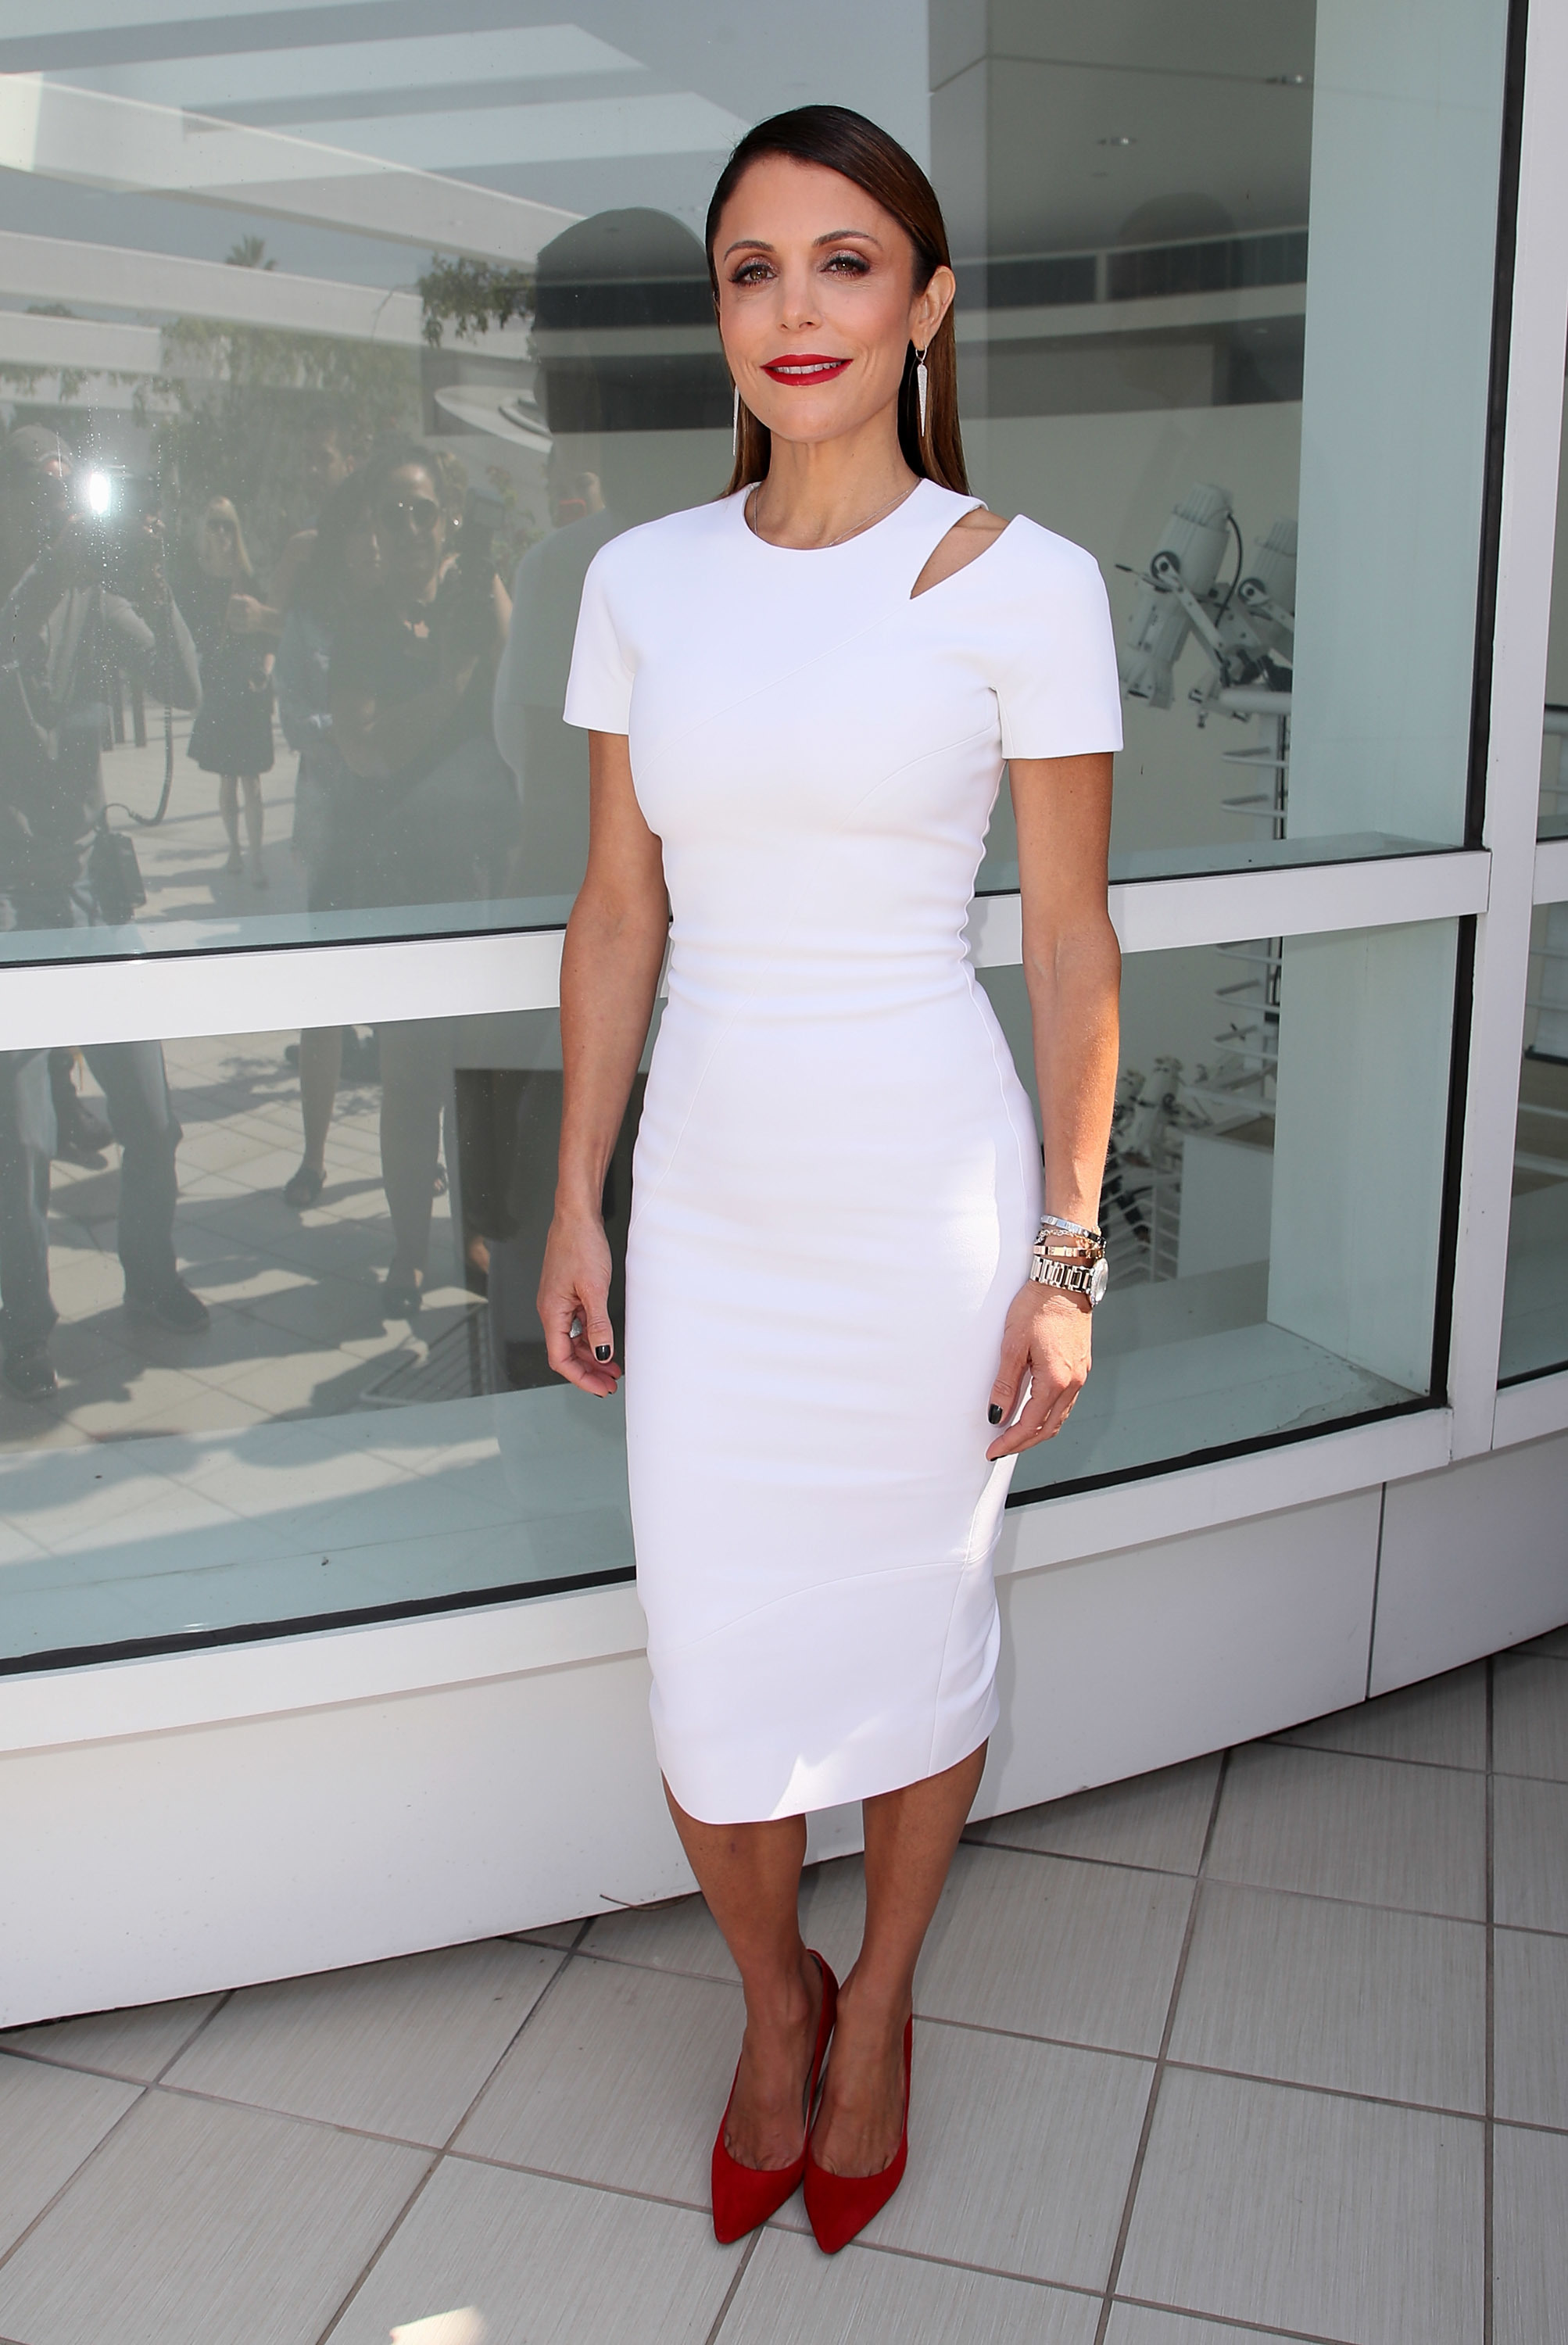 """Bethenny Frankel attends the premiere of ABC's """"Shark Tank"""" Season 9 at The Paley Center for Media in Beverly Hills, Calif., on Sept. 20, 2017."""